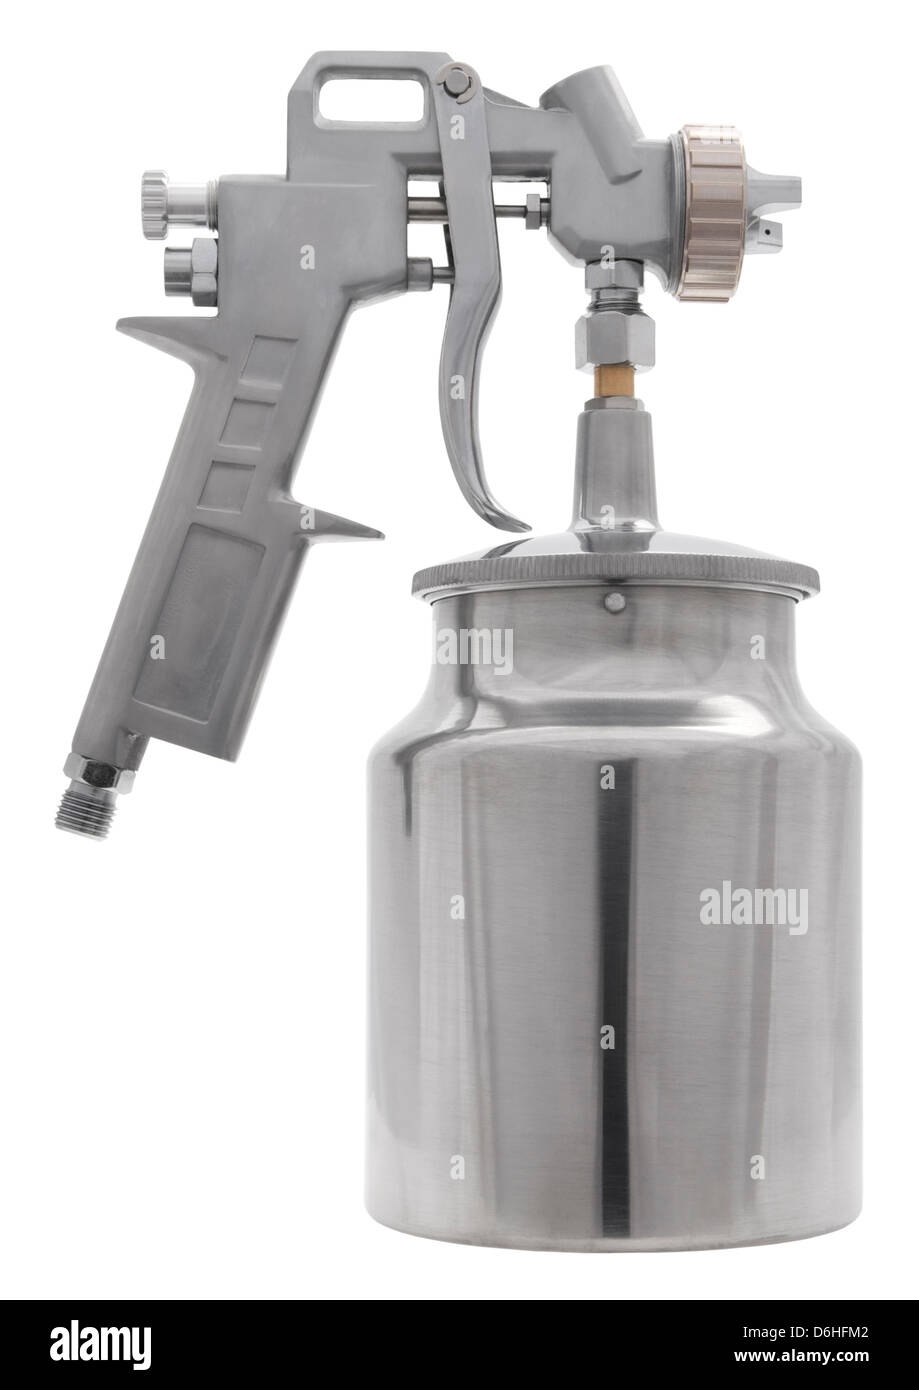 Spray paint gun air tool on white background - Stock Image